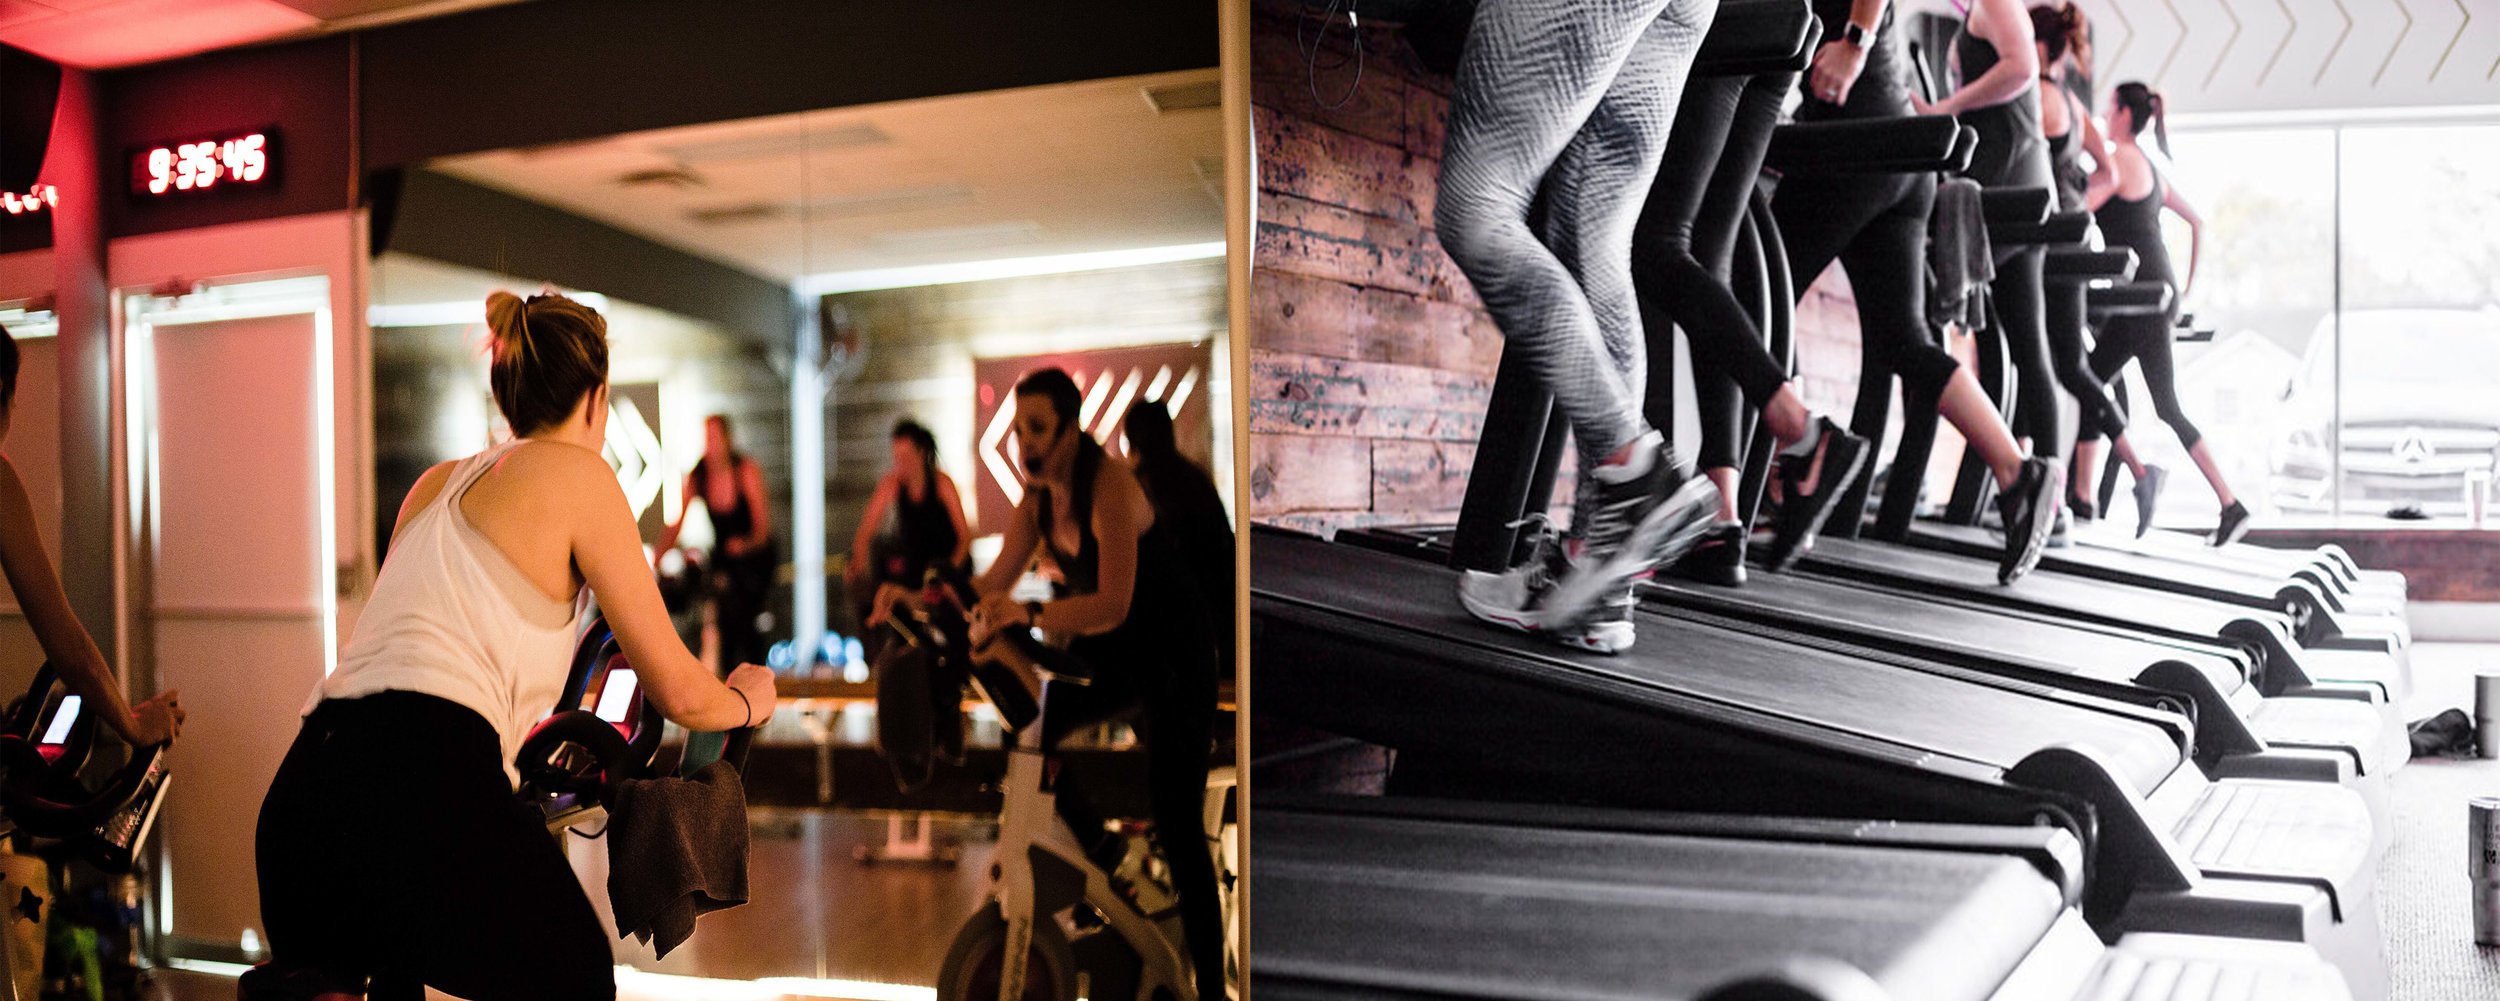 Try our special combo cardio class taught by Kristen Arsenault and Kelsey Cutrell:  30 minutes of bike  30 minutes of a treadmill based workout.  Sign up on Mindbody